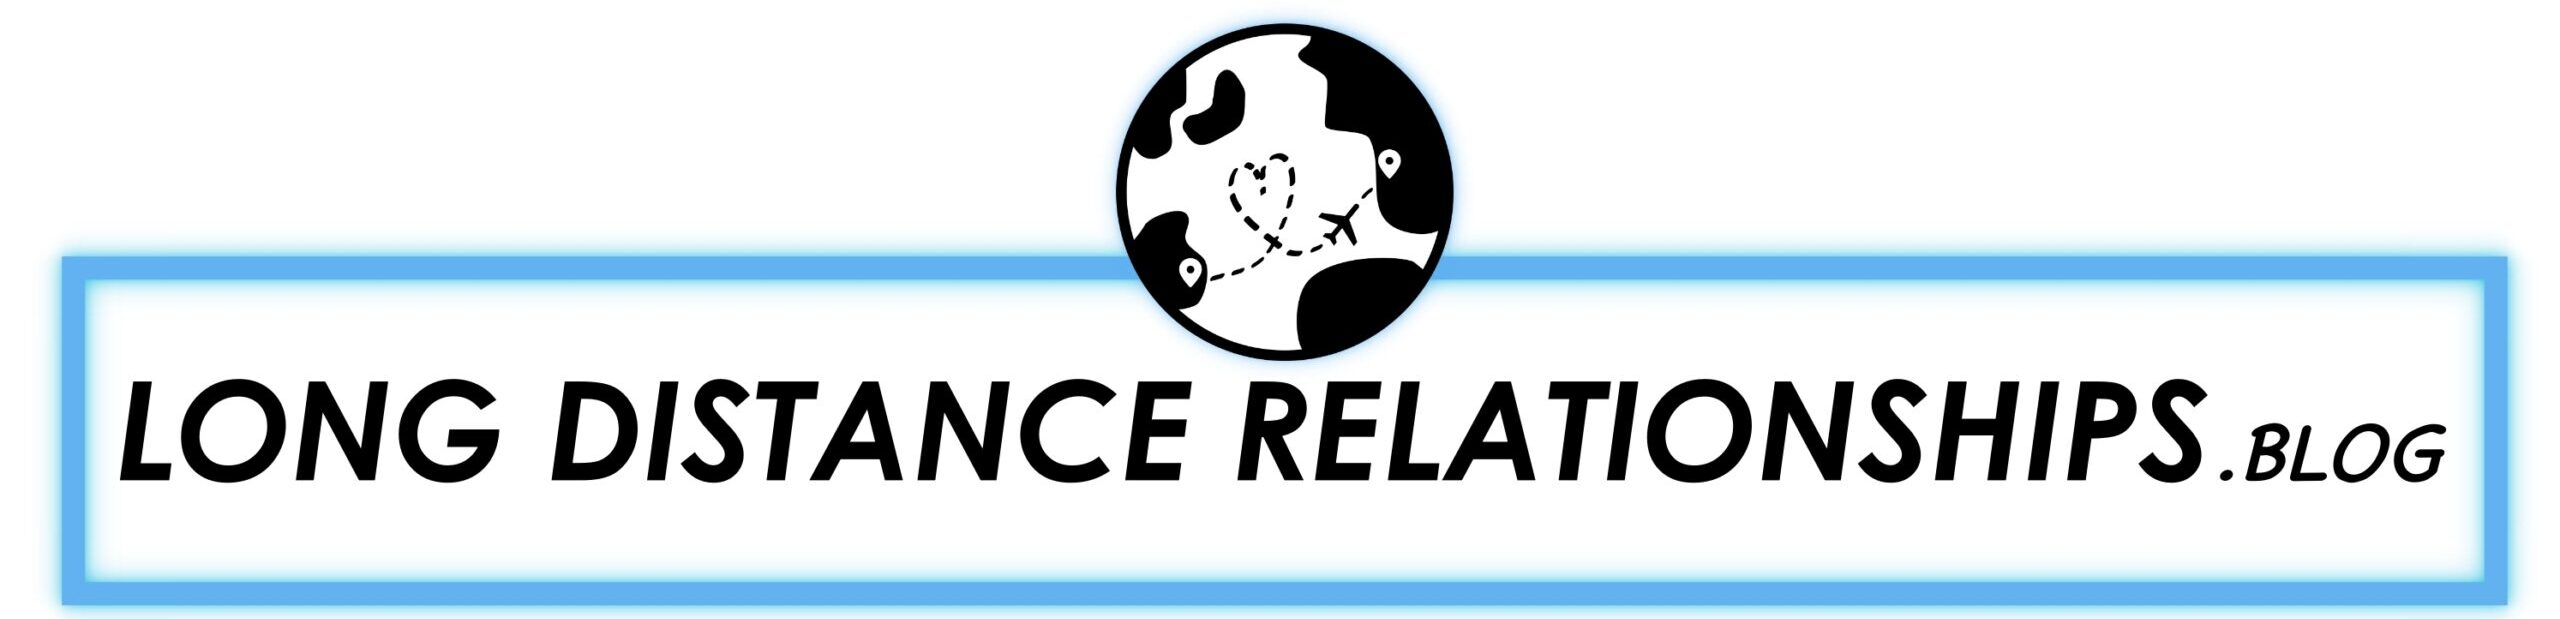 Long Distance Relationships Blog